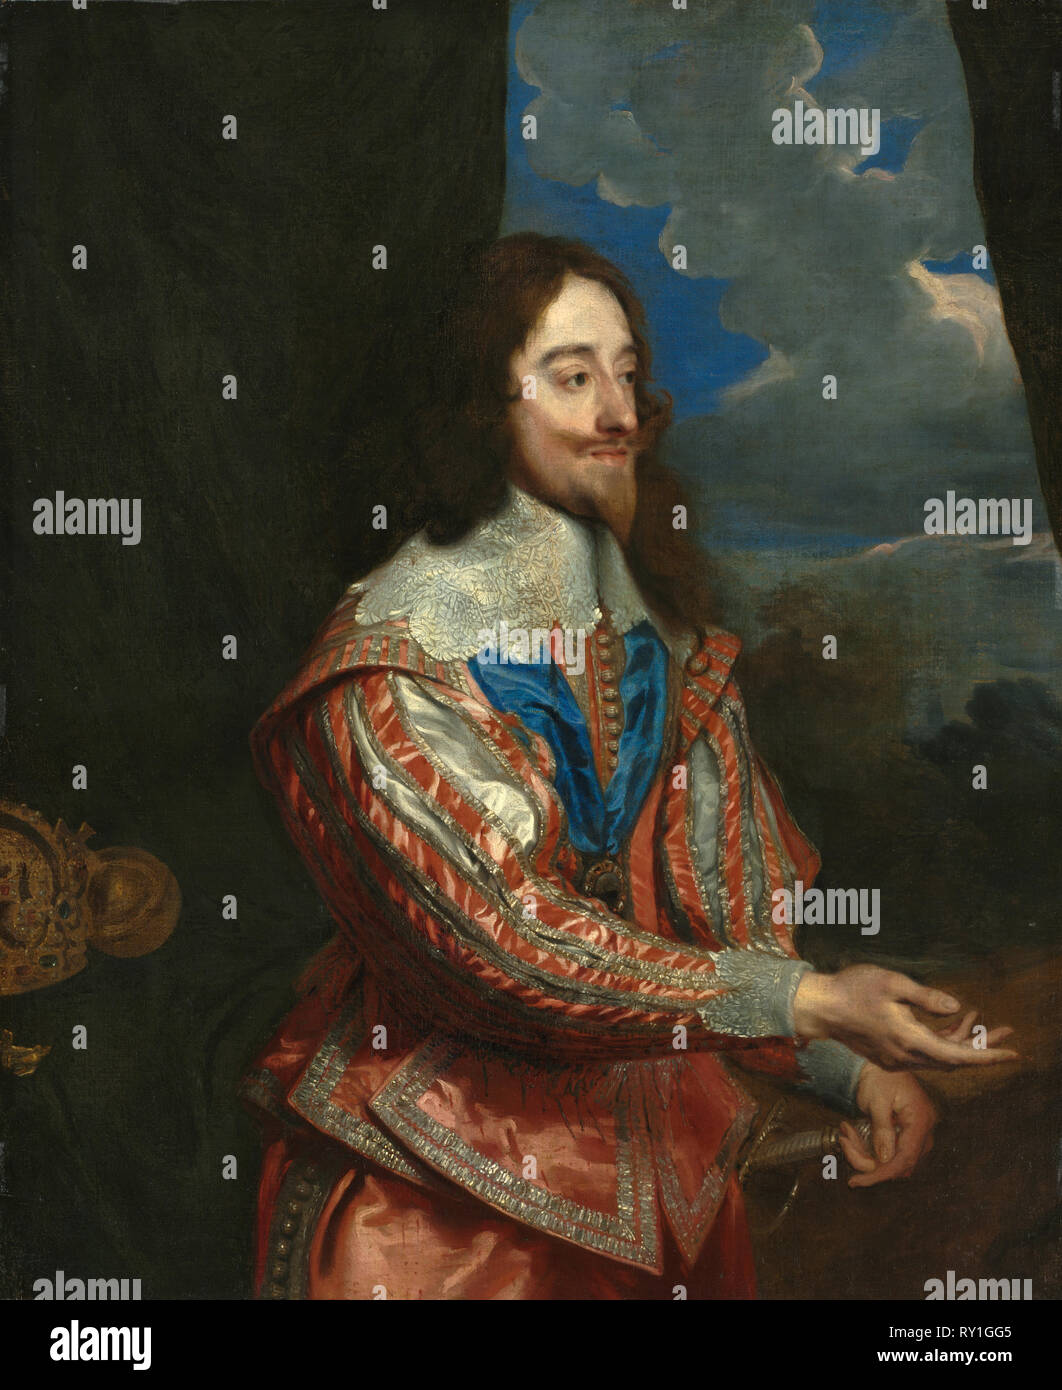 Portrait of Charles I (1600-1649), 17th century or later. Copy after Anthony van Dyck (Flemish, 1599-1641). Oil on canvas; framed: 153.7 x 130.2 x 105.4 cm (60 1/2 x 51 1/4 x 41 1/2 in.); unframed: 116.8 x 96.3 cm (46 x 37 15/16 in Stock Photo